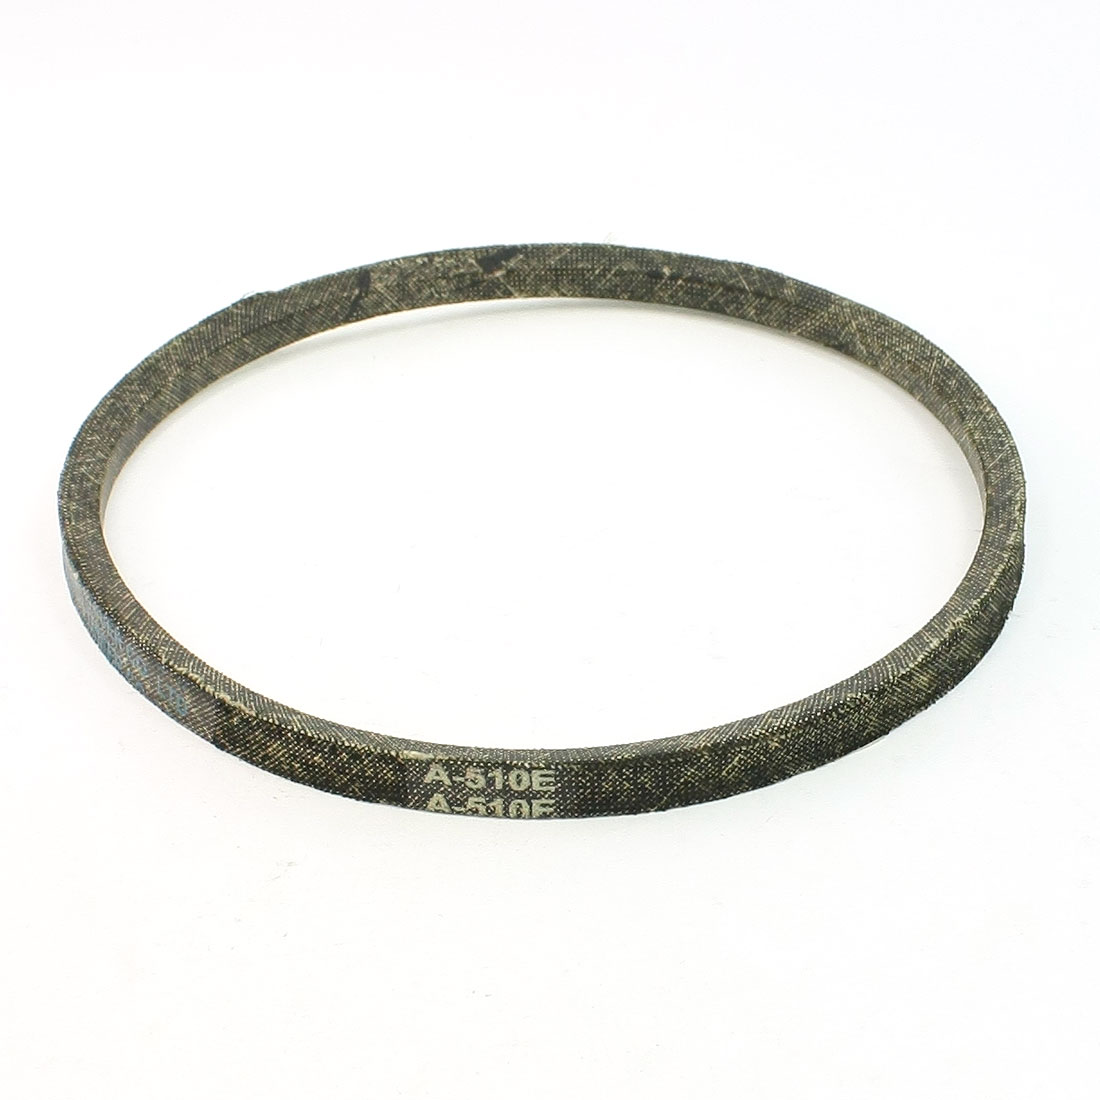 Black Washing Machine Motor A Type V Belt Girth 510mm Top Width 13mm